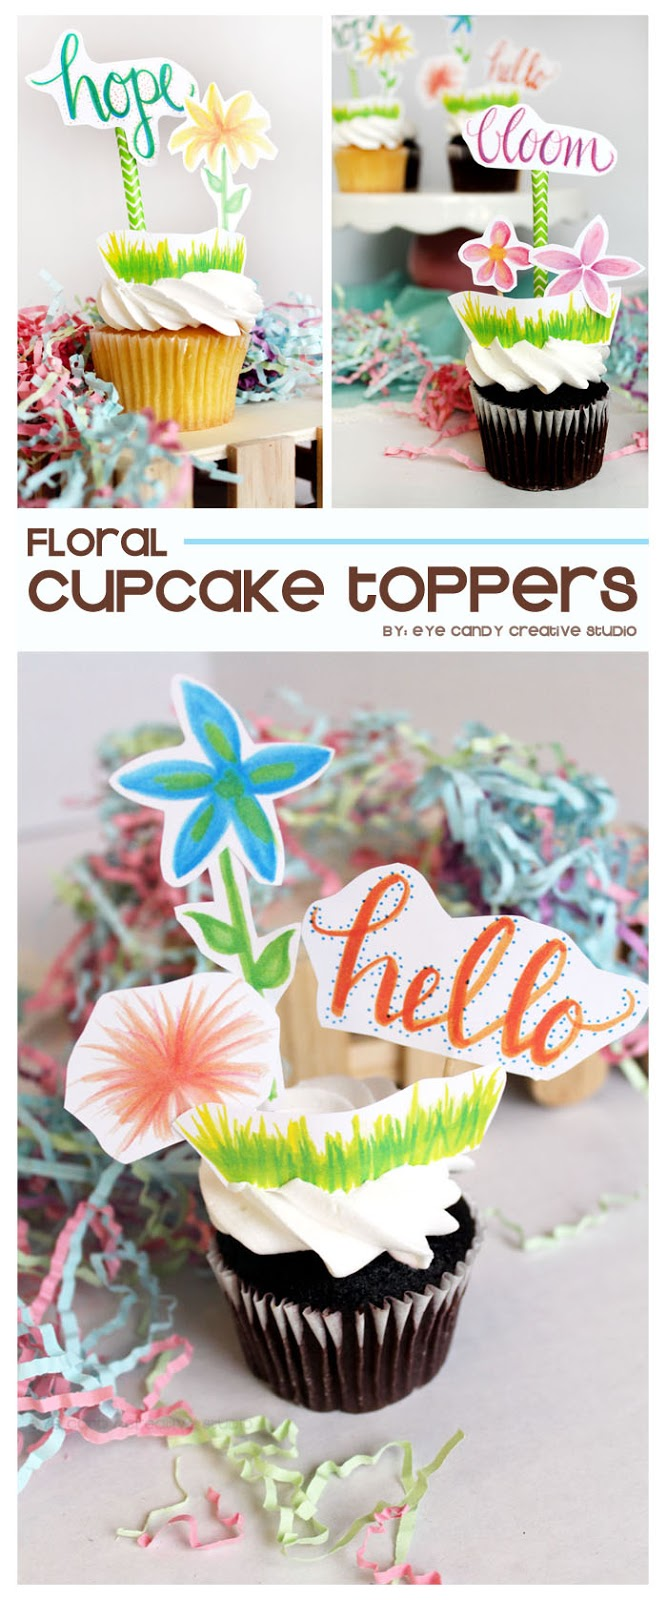 floral cupcake toppers, hope, bloom, hand lettering, handmade toppers